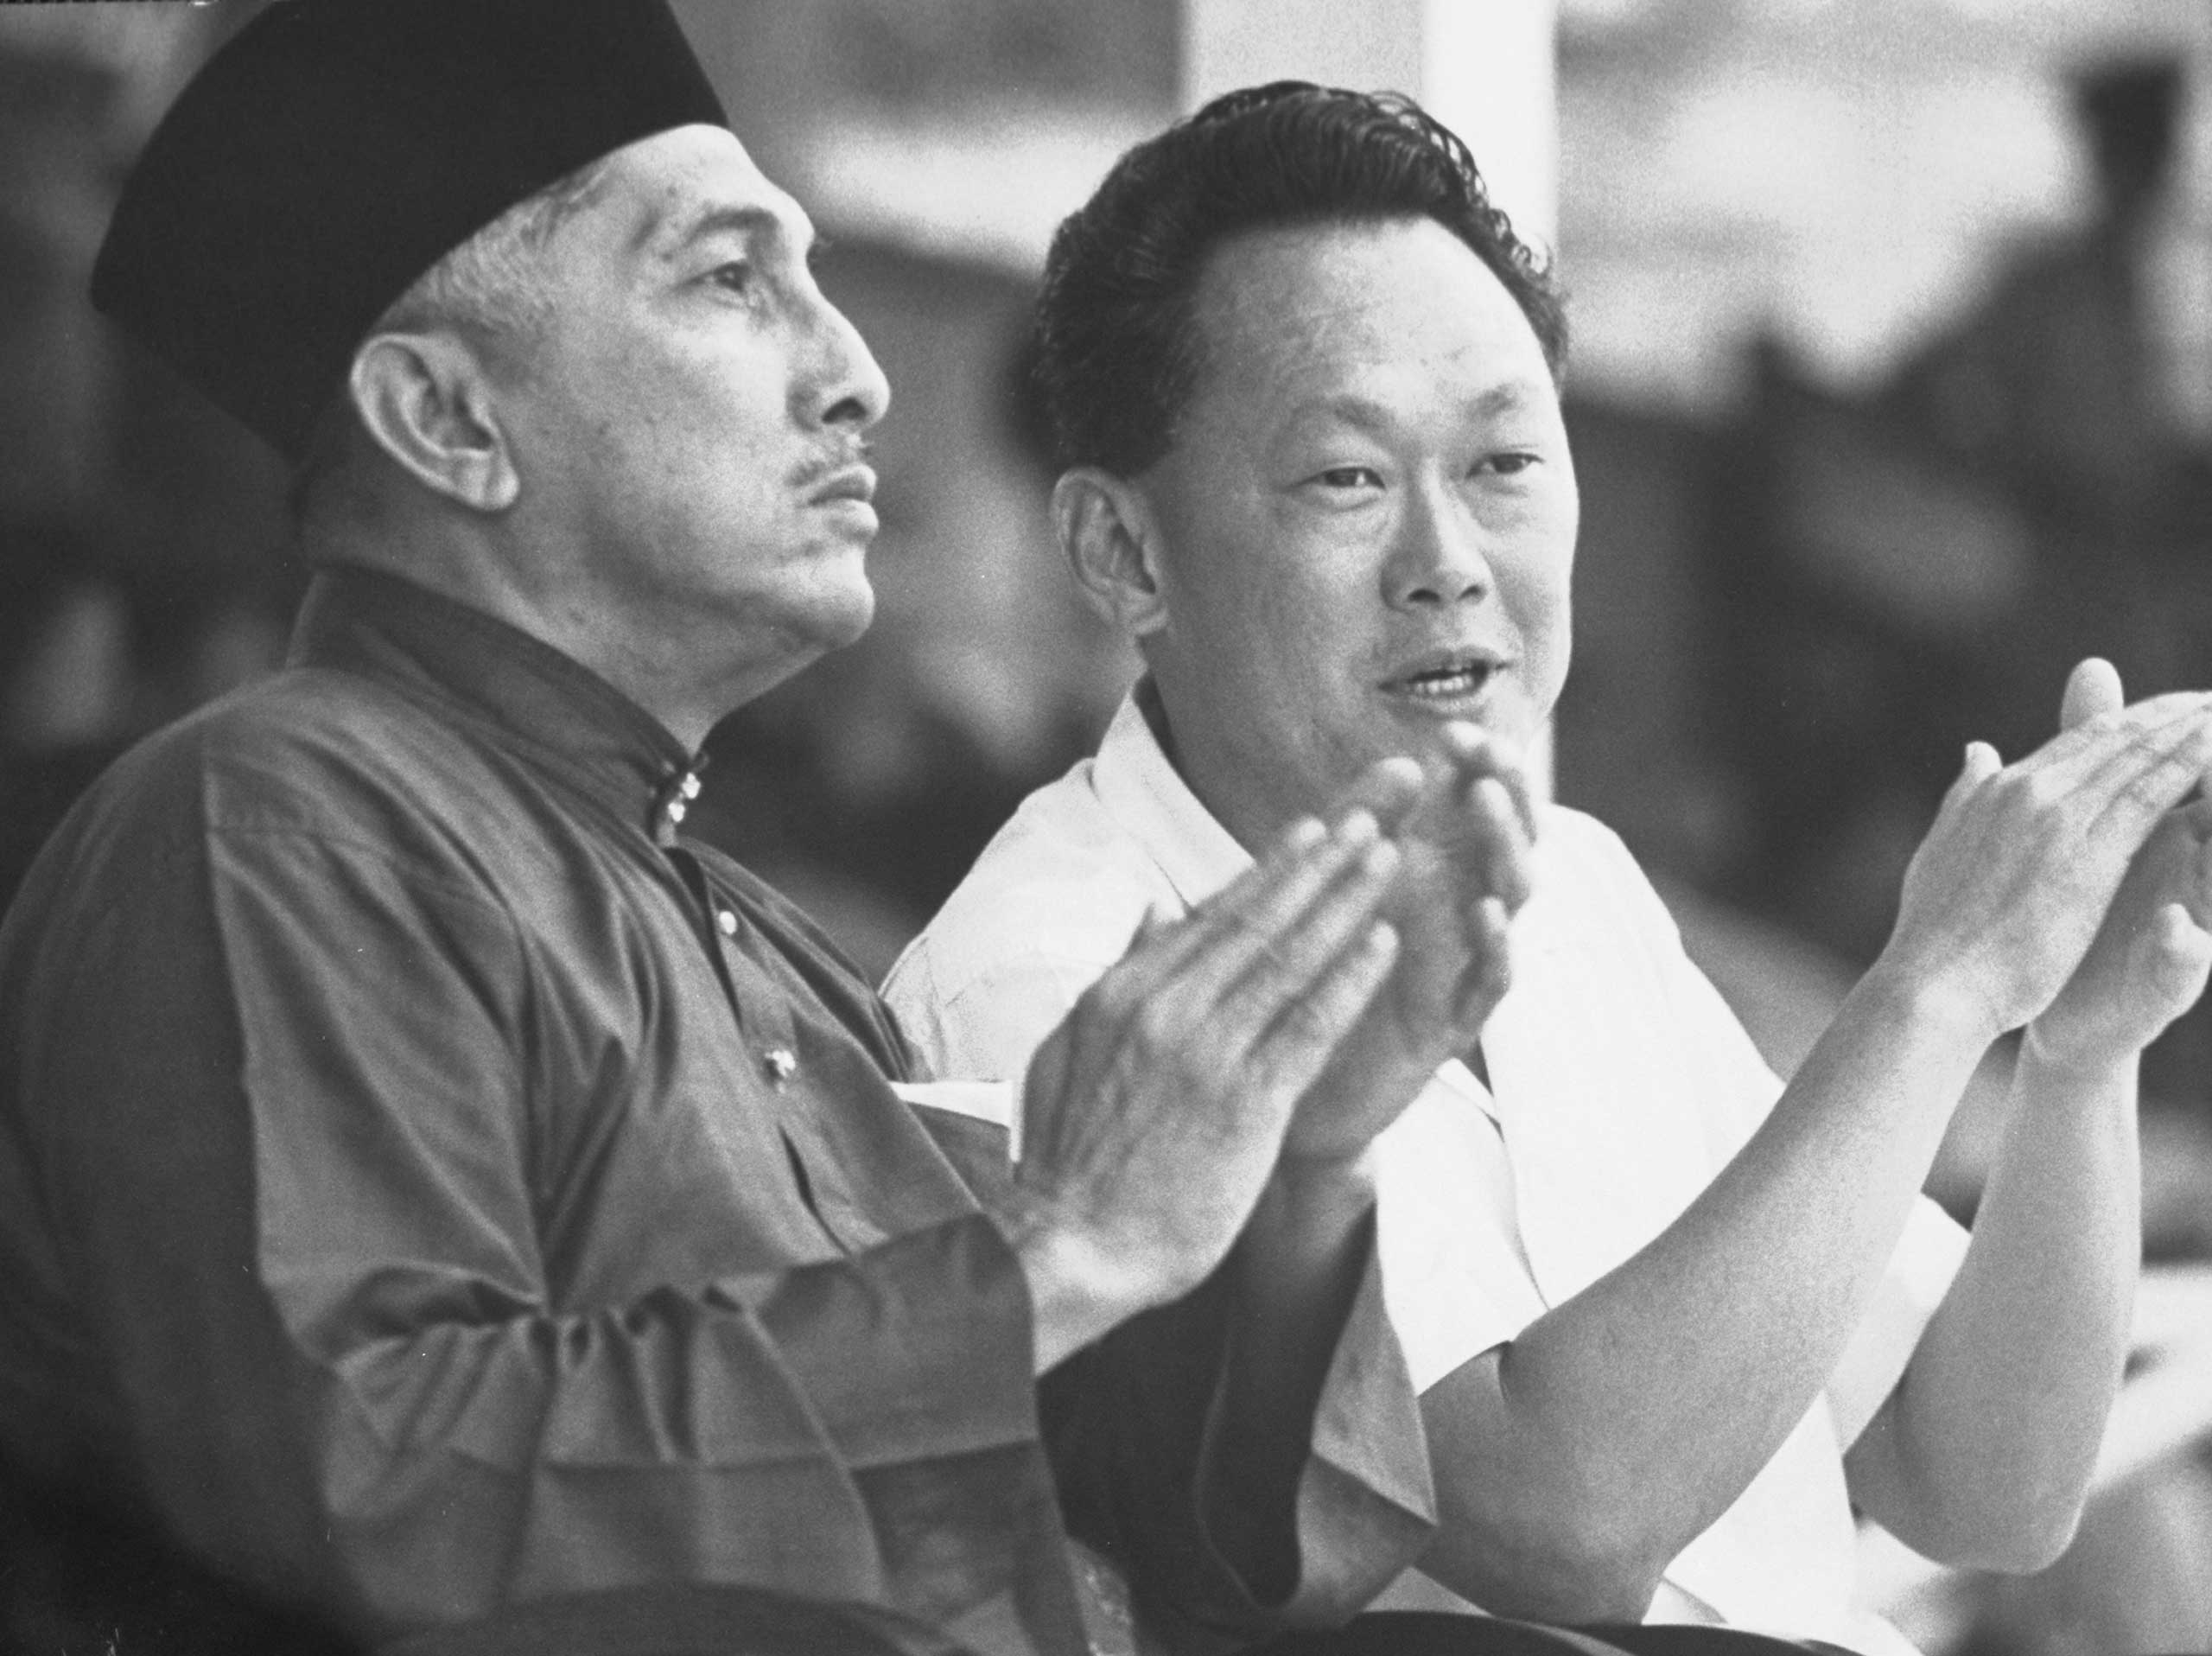 Prime Minister Lee Kuan Yew during May Day celebration in 1965.